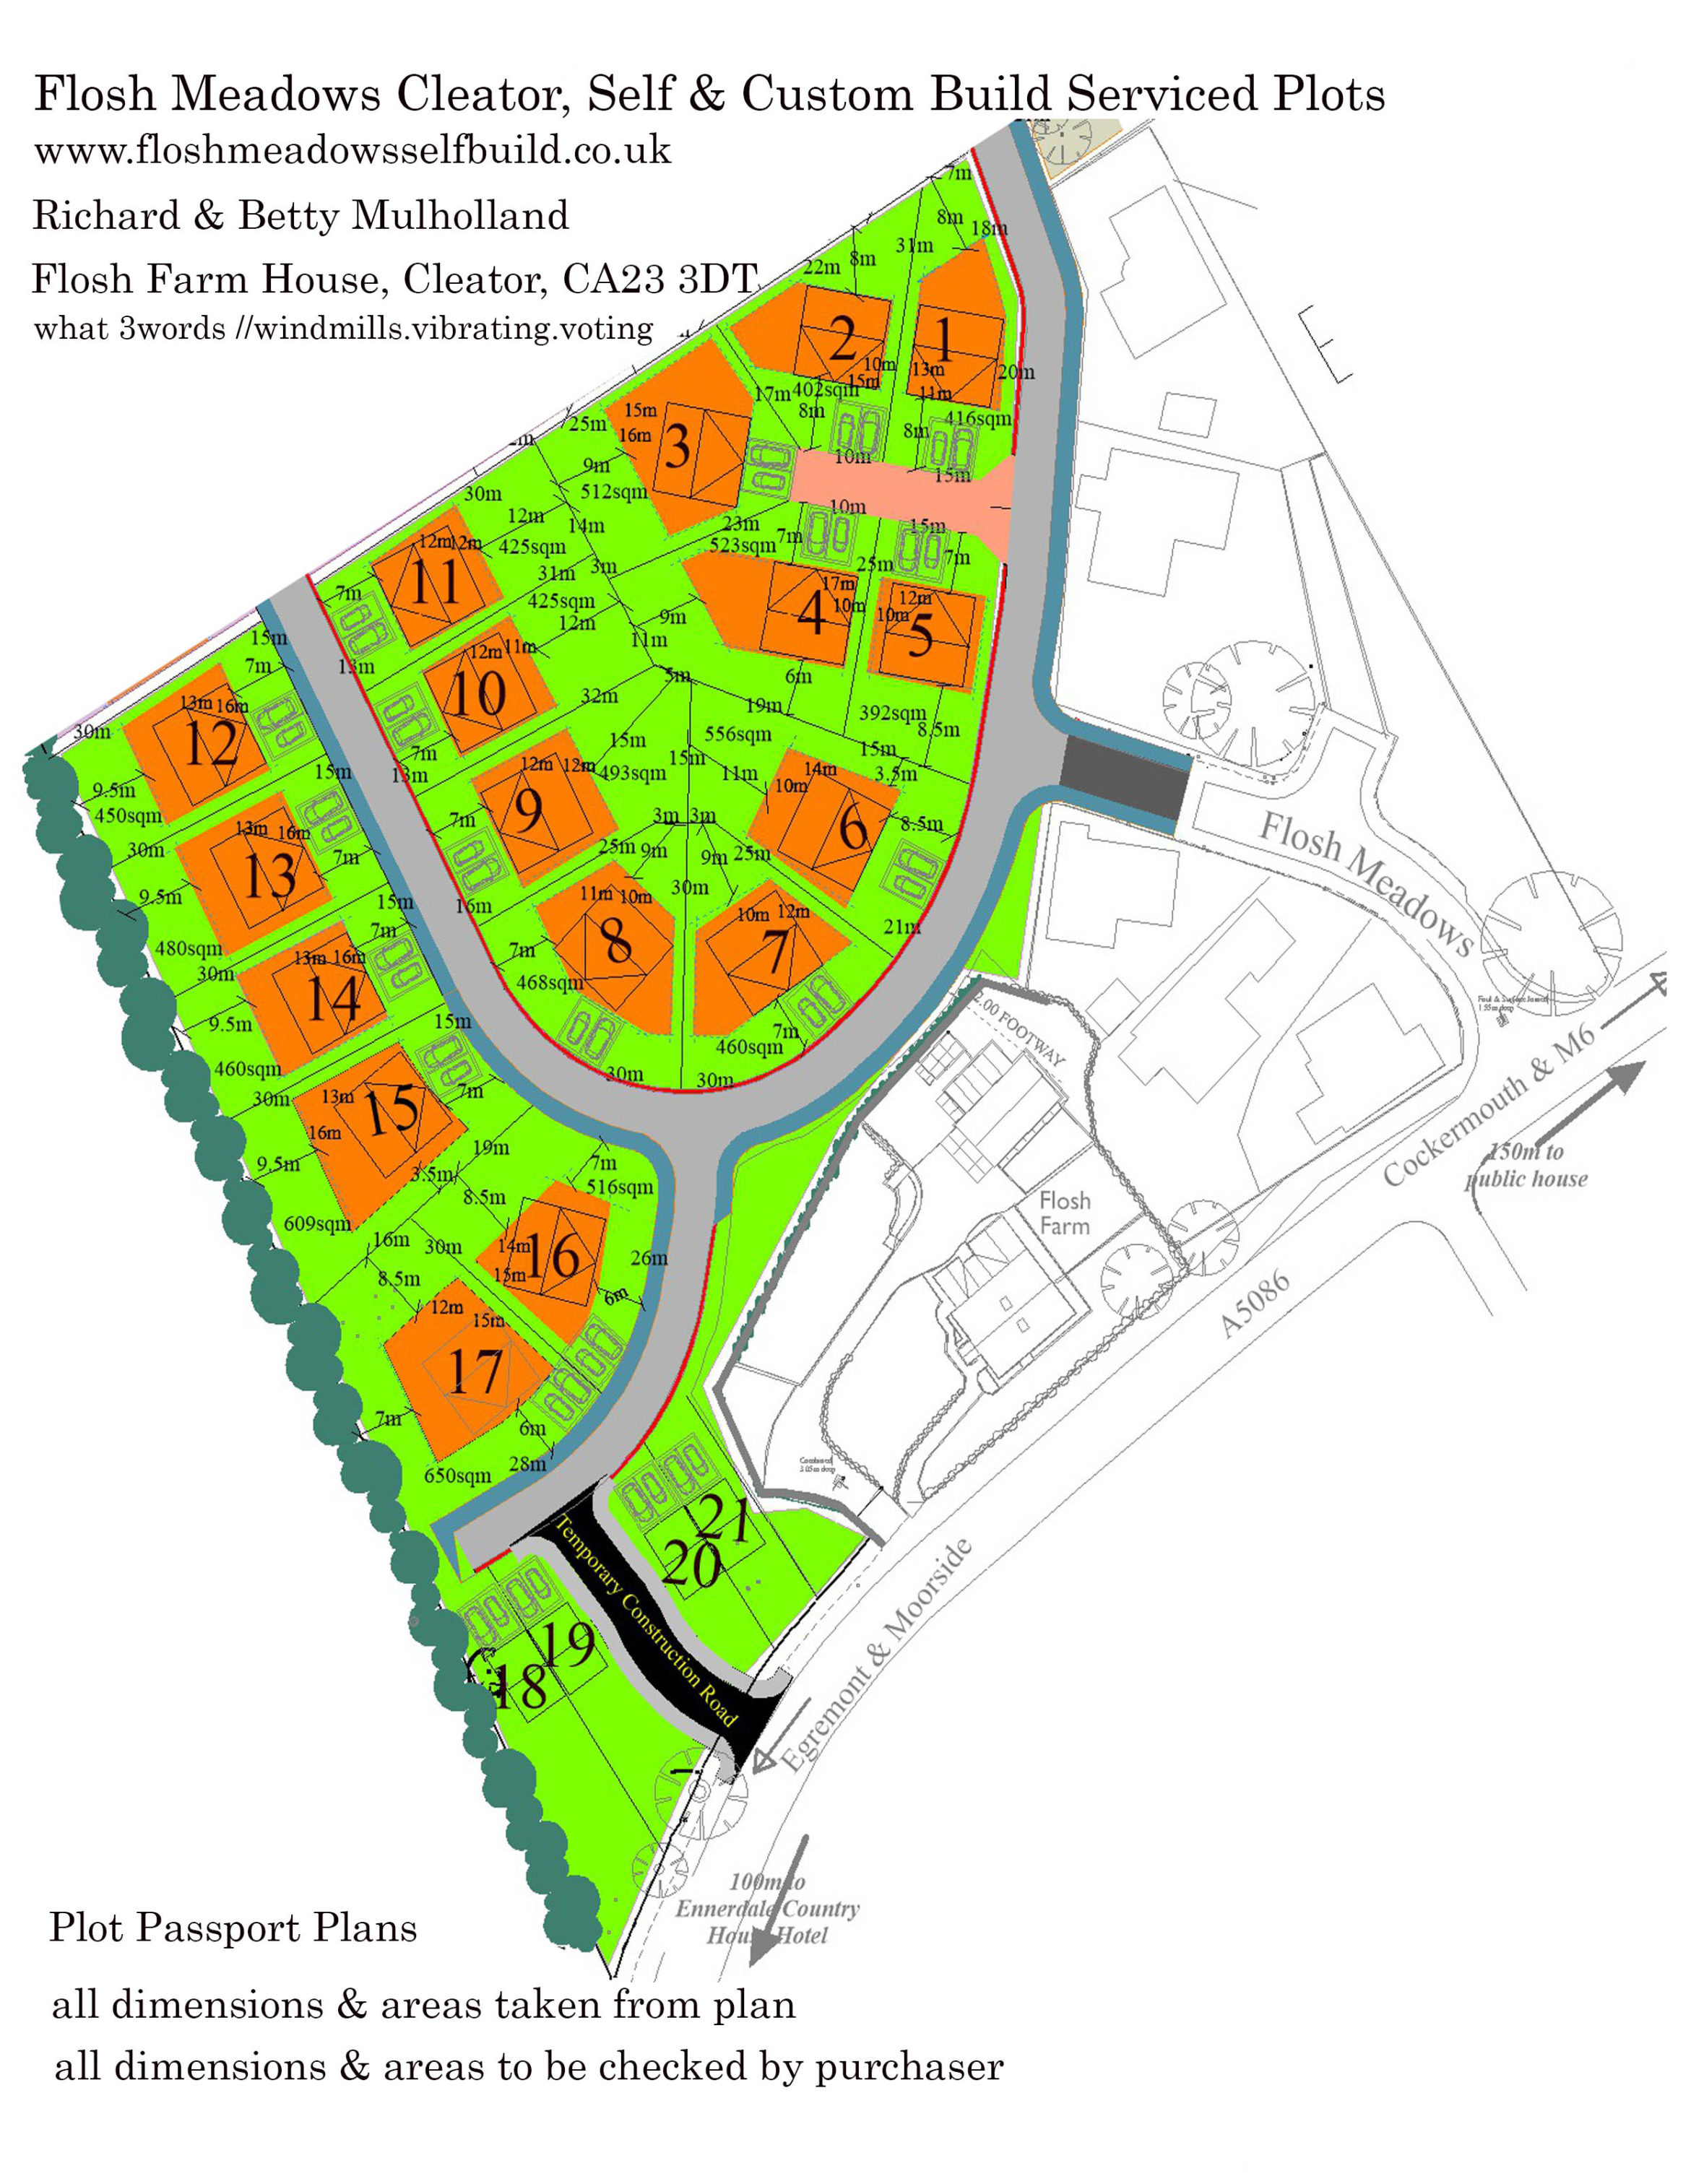 Flosh Meadows Serviced Plots, Cleator-The Meadow- Lengths and Areas-01 Feb 2020